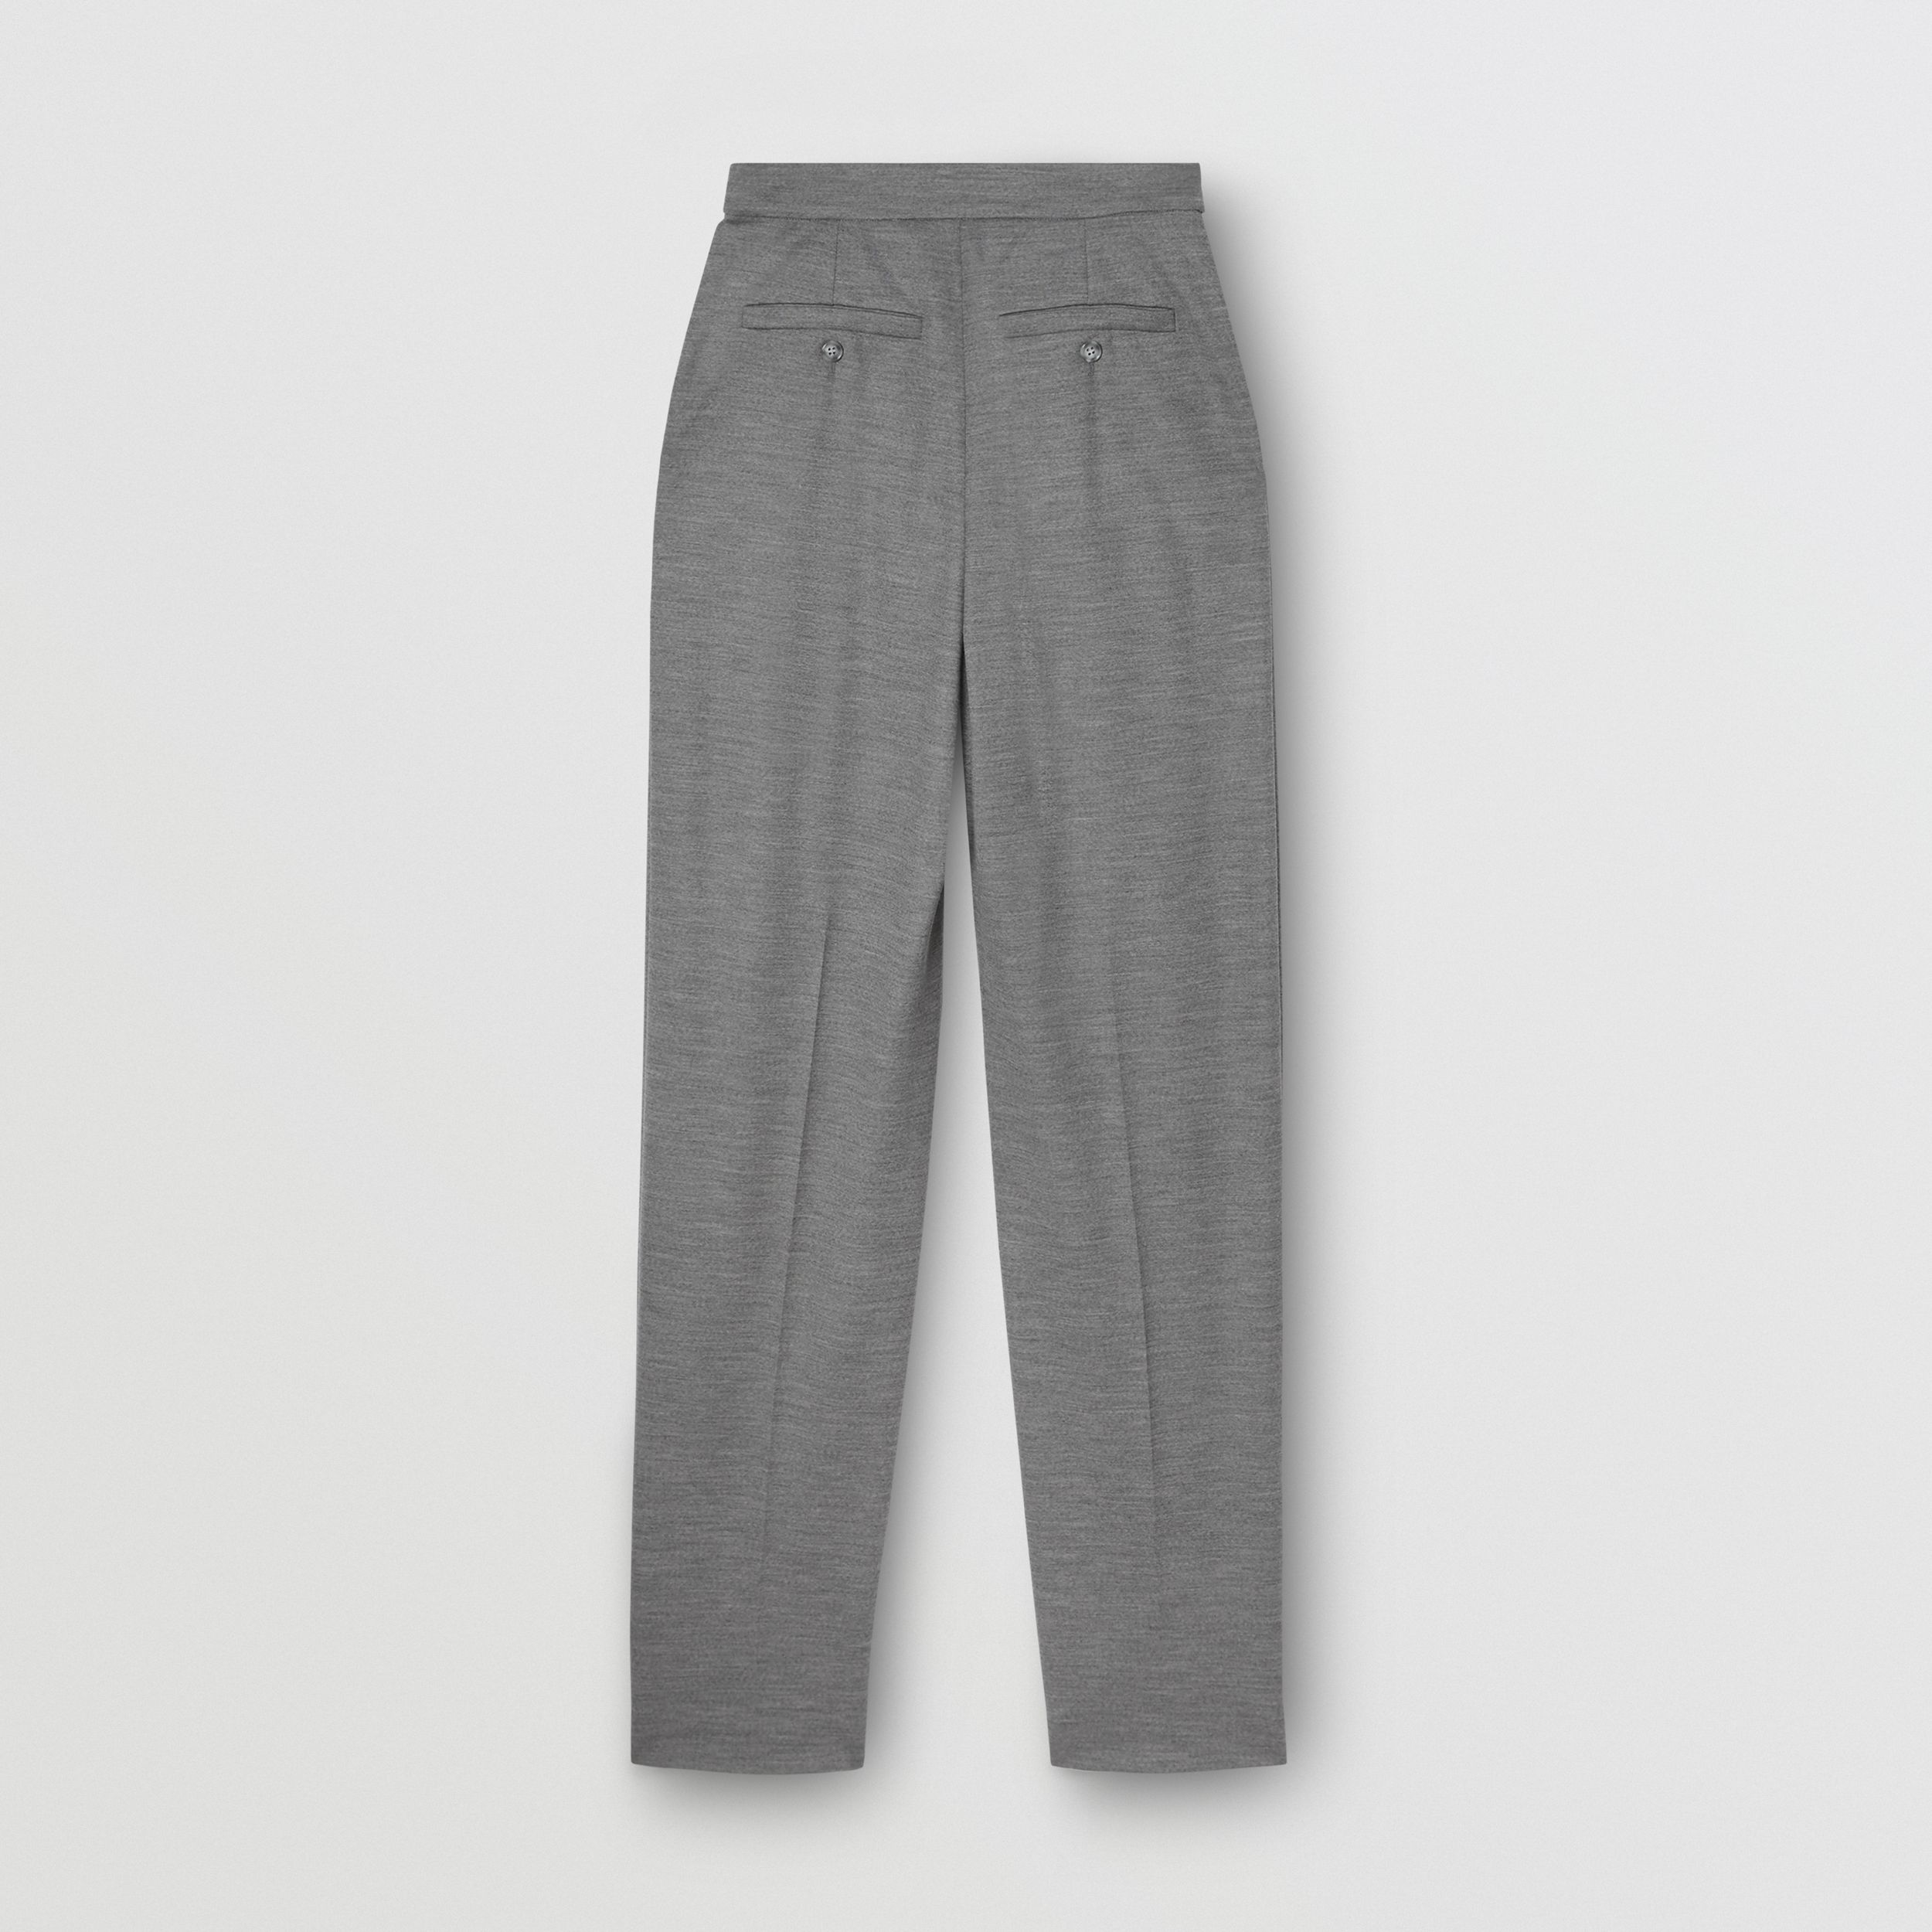 Cut-out Detail Wool Jersey Tailored Trousers in Cloud Grey - Women | Burberry - 2